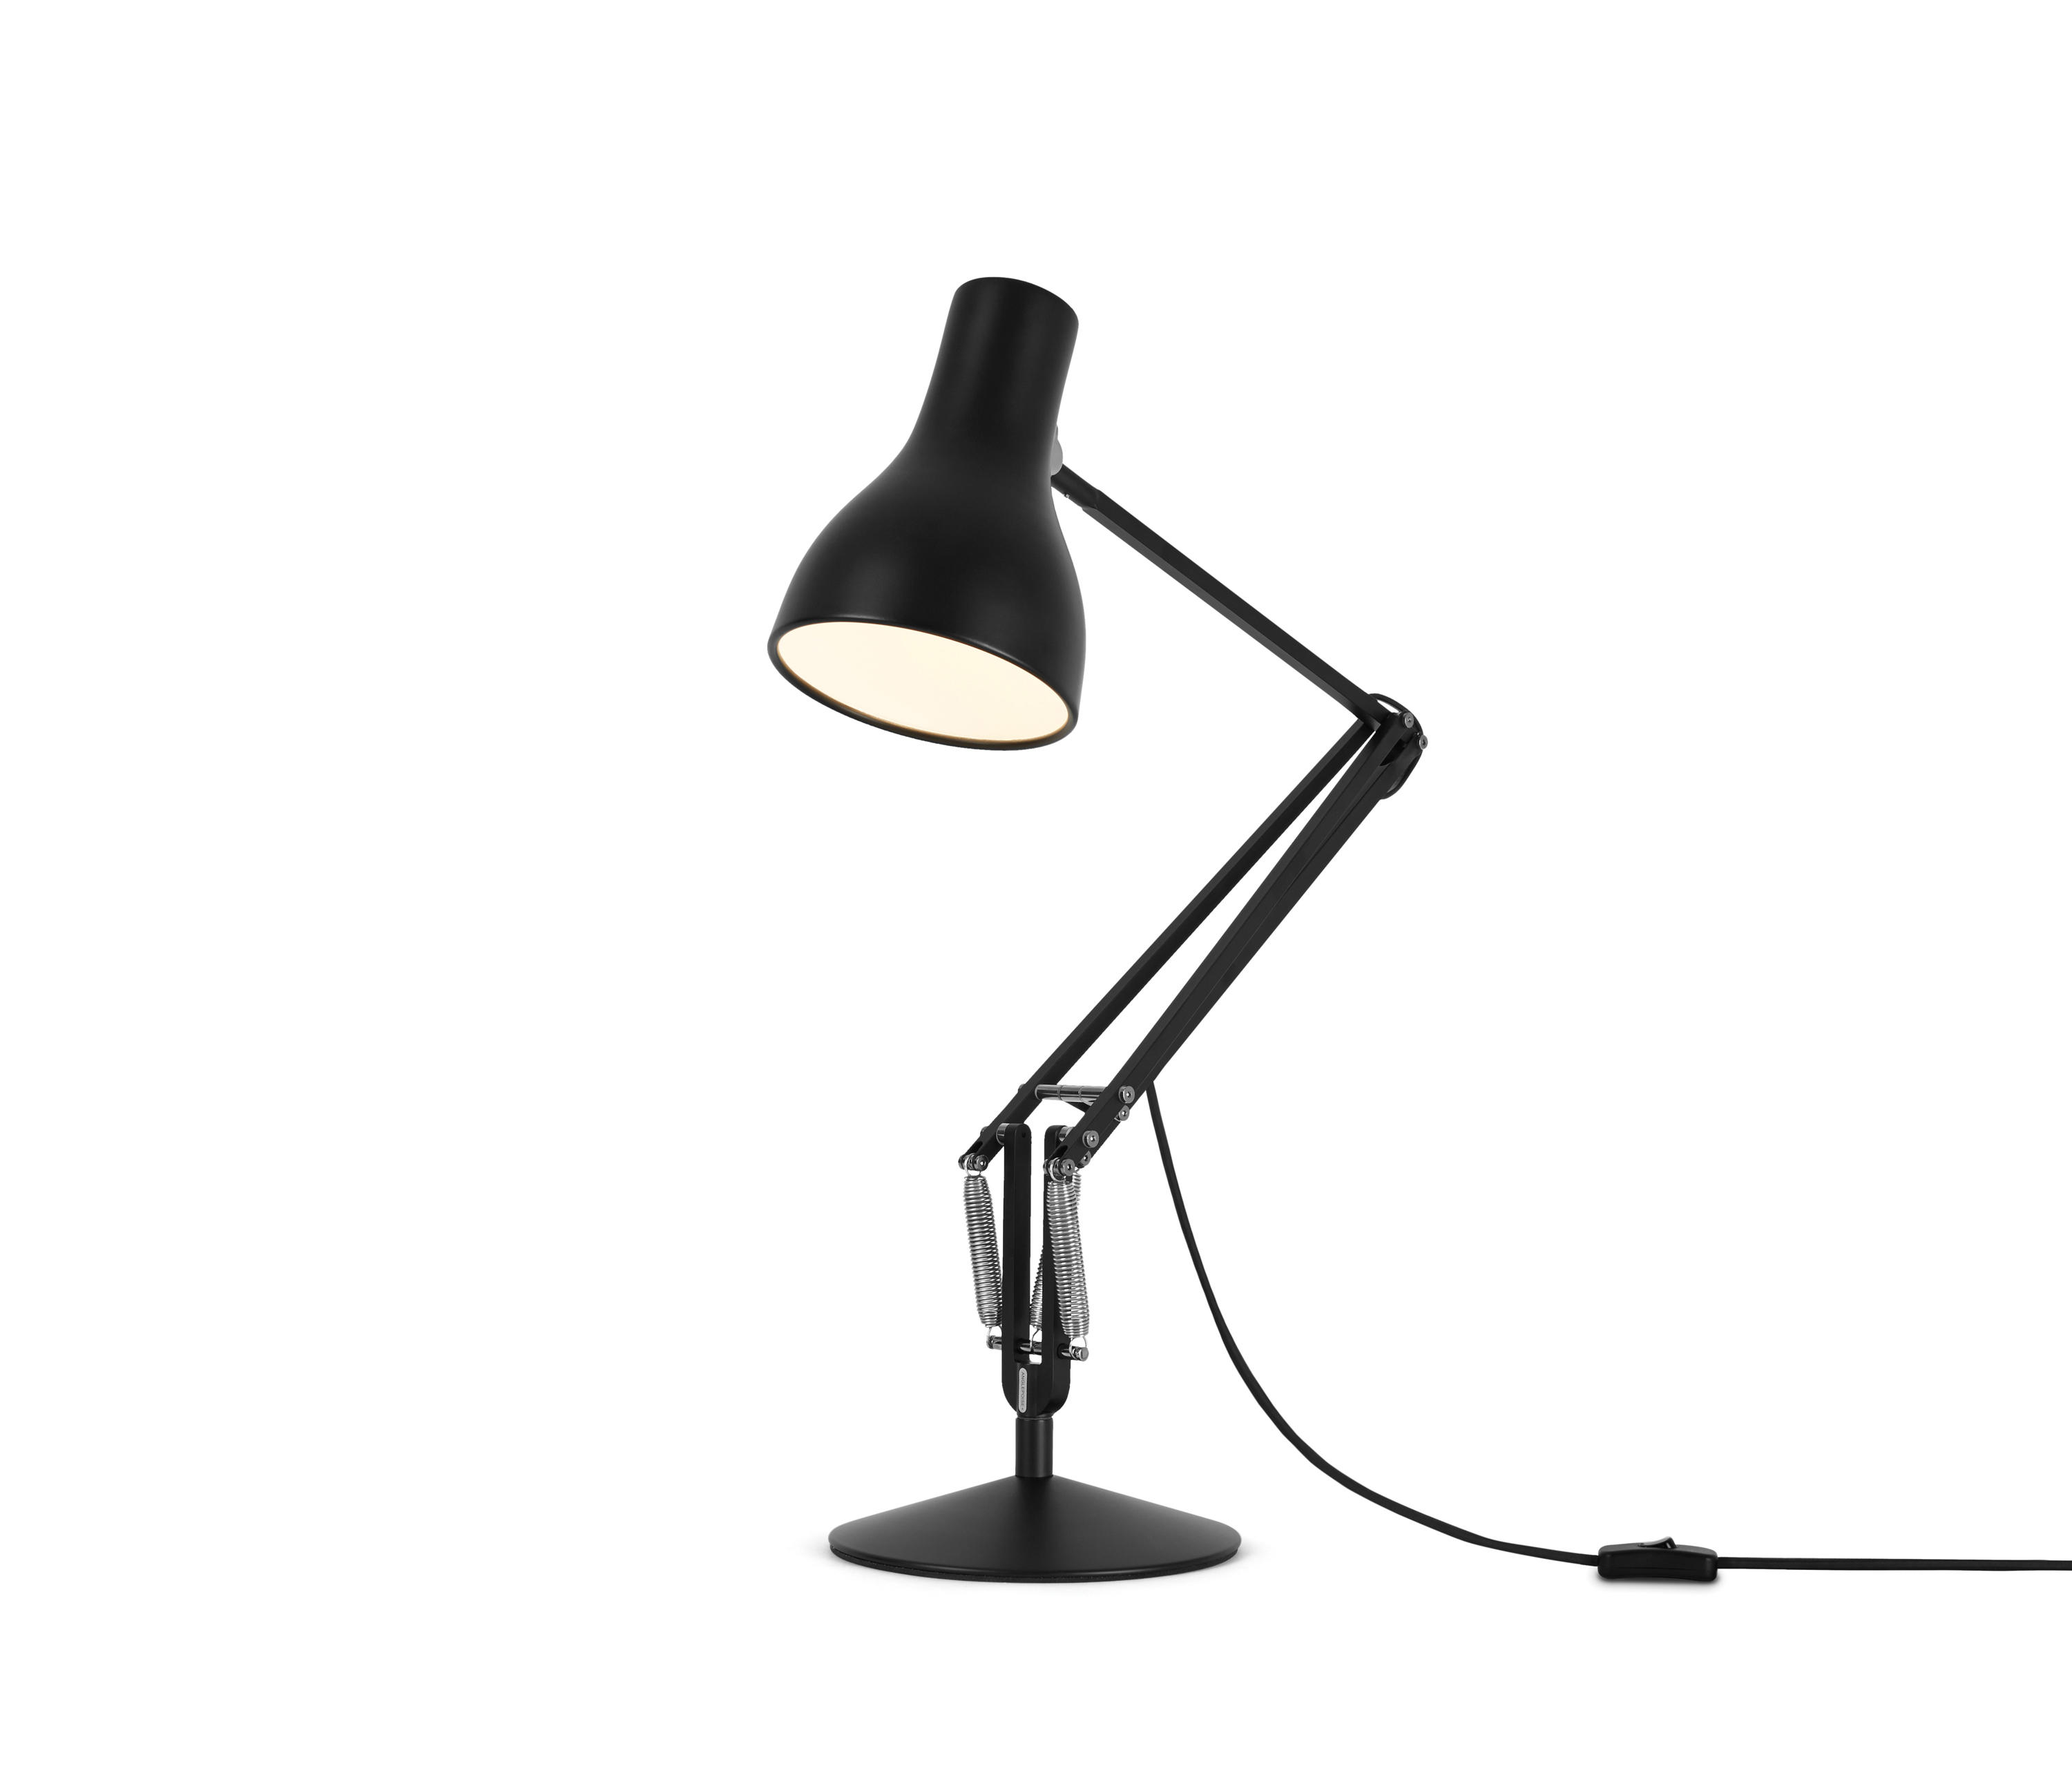 Type 75 Desk Lamp General Lighting From Anglepoise